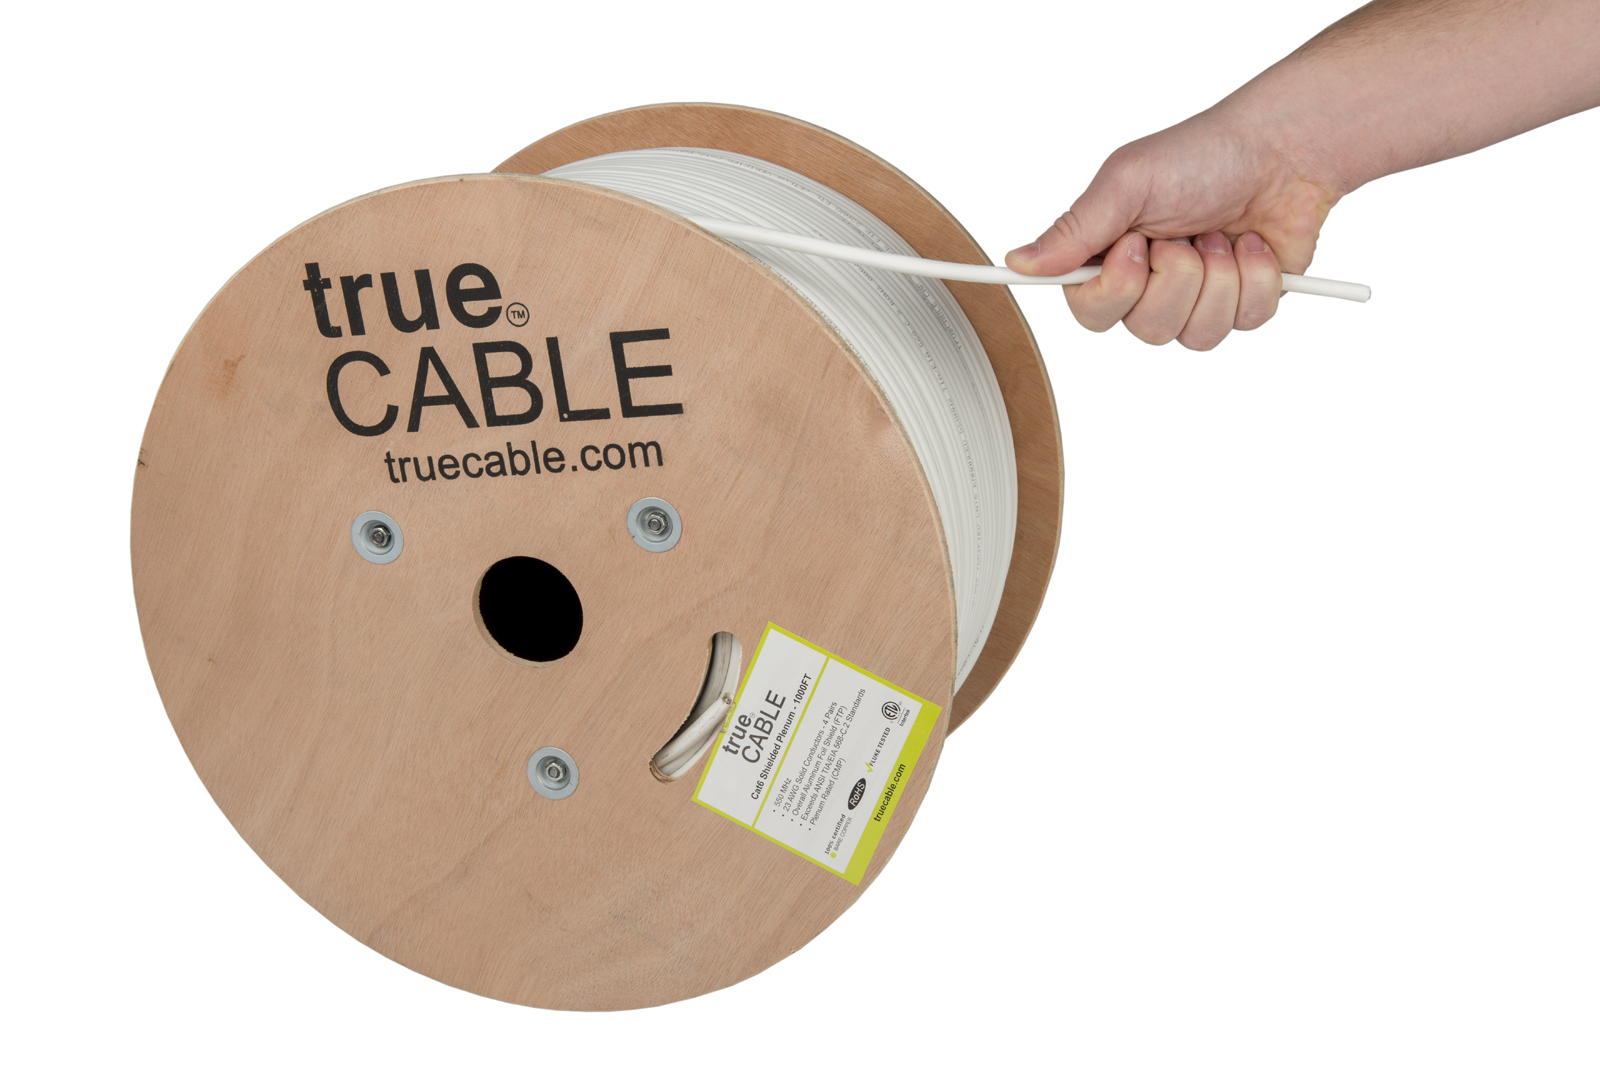 True Cable white cable reel being pulled photographed by Robintek Photography